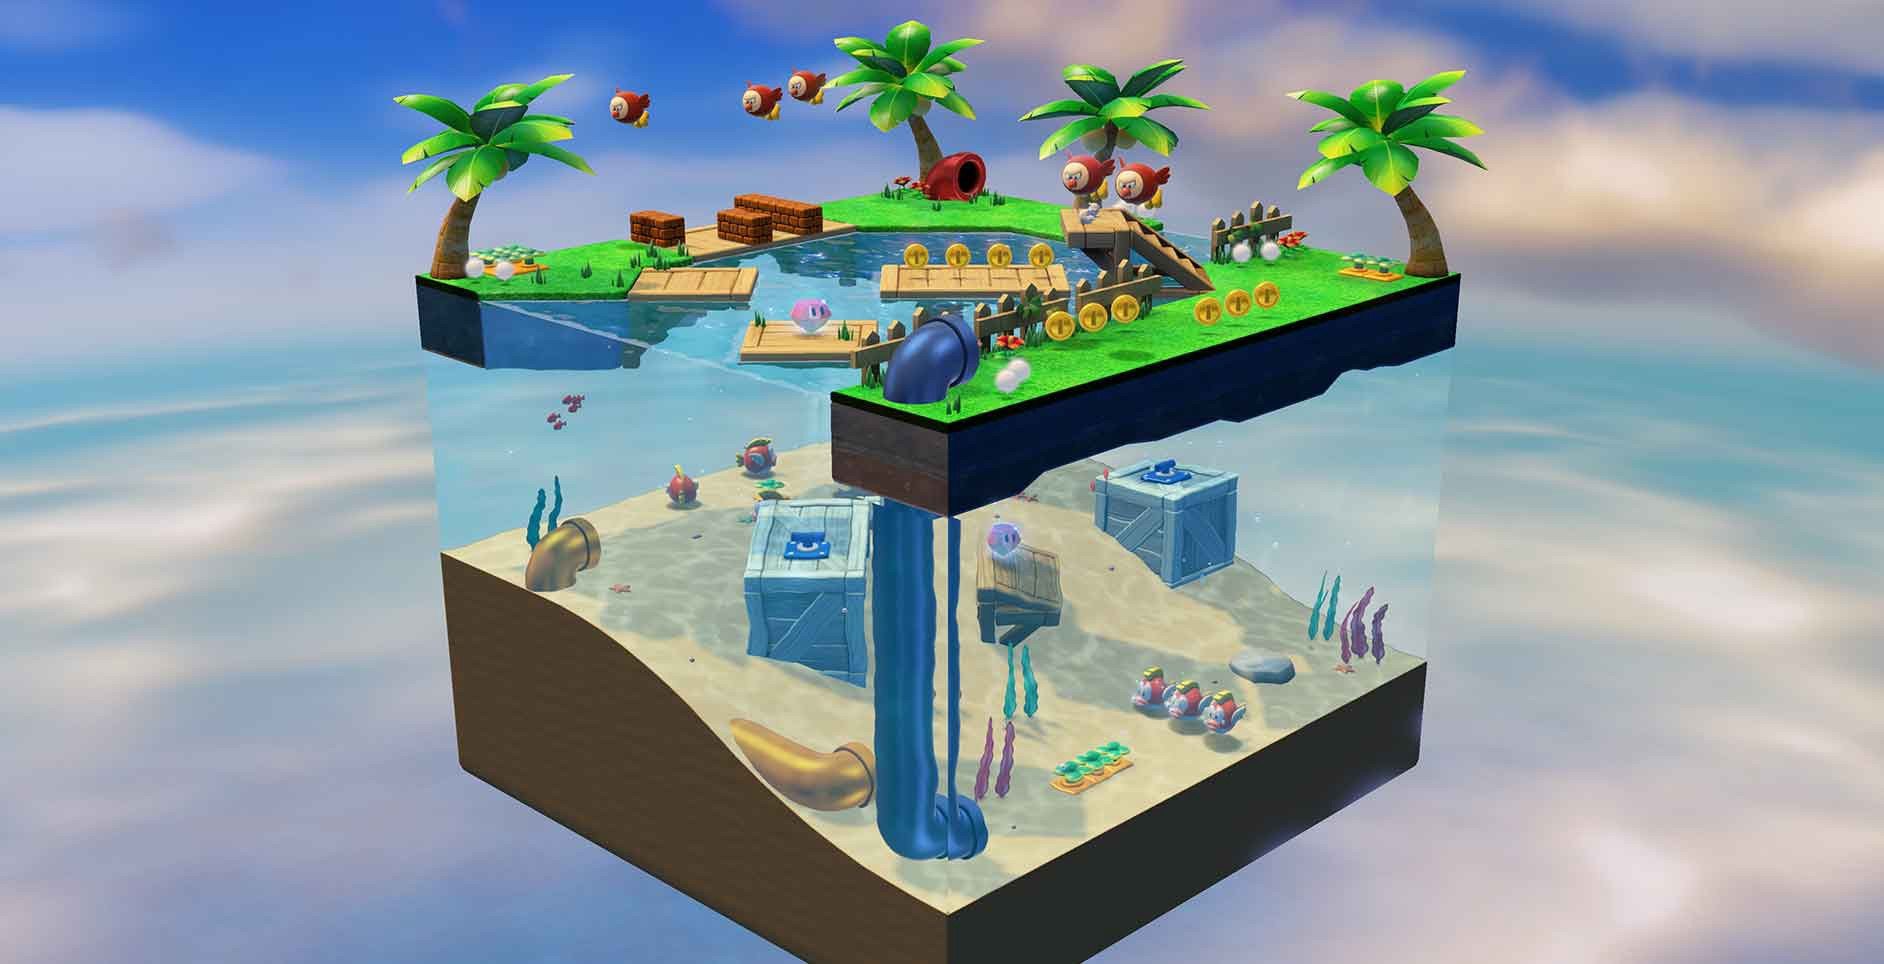 A screenshot of the Captain Toad: Treasure Tracker game depicting a cubic, isolated beach environment